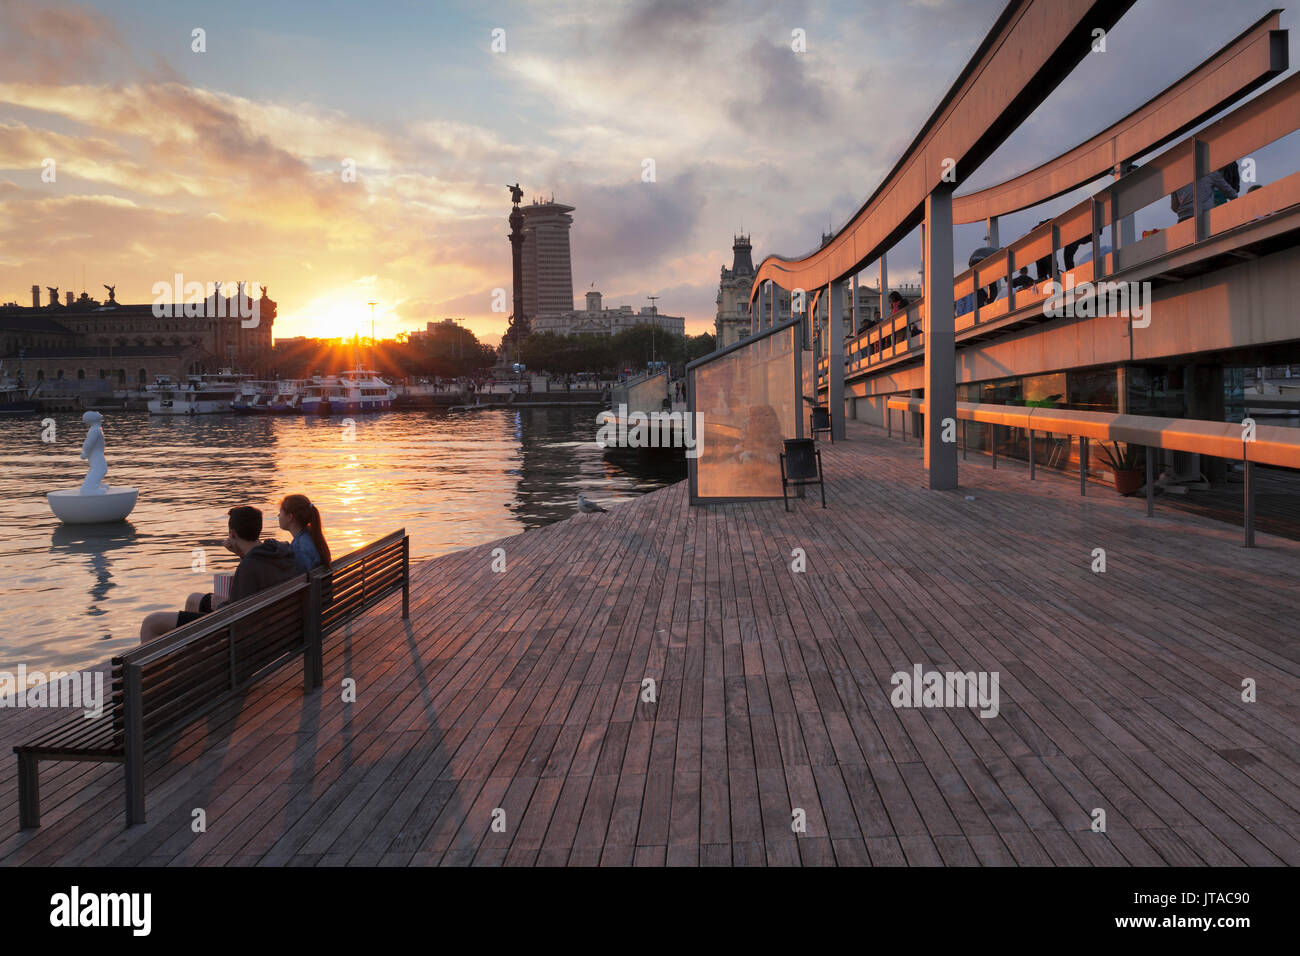 Rambla del Mar at Port Vell, Edificio Colon Tower and Columbus Monument (Monument a Colom), Barcelona, Catalonia, Spain, Europe - Stock Image